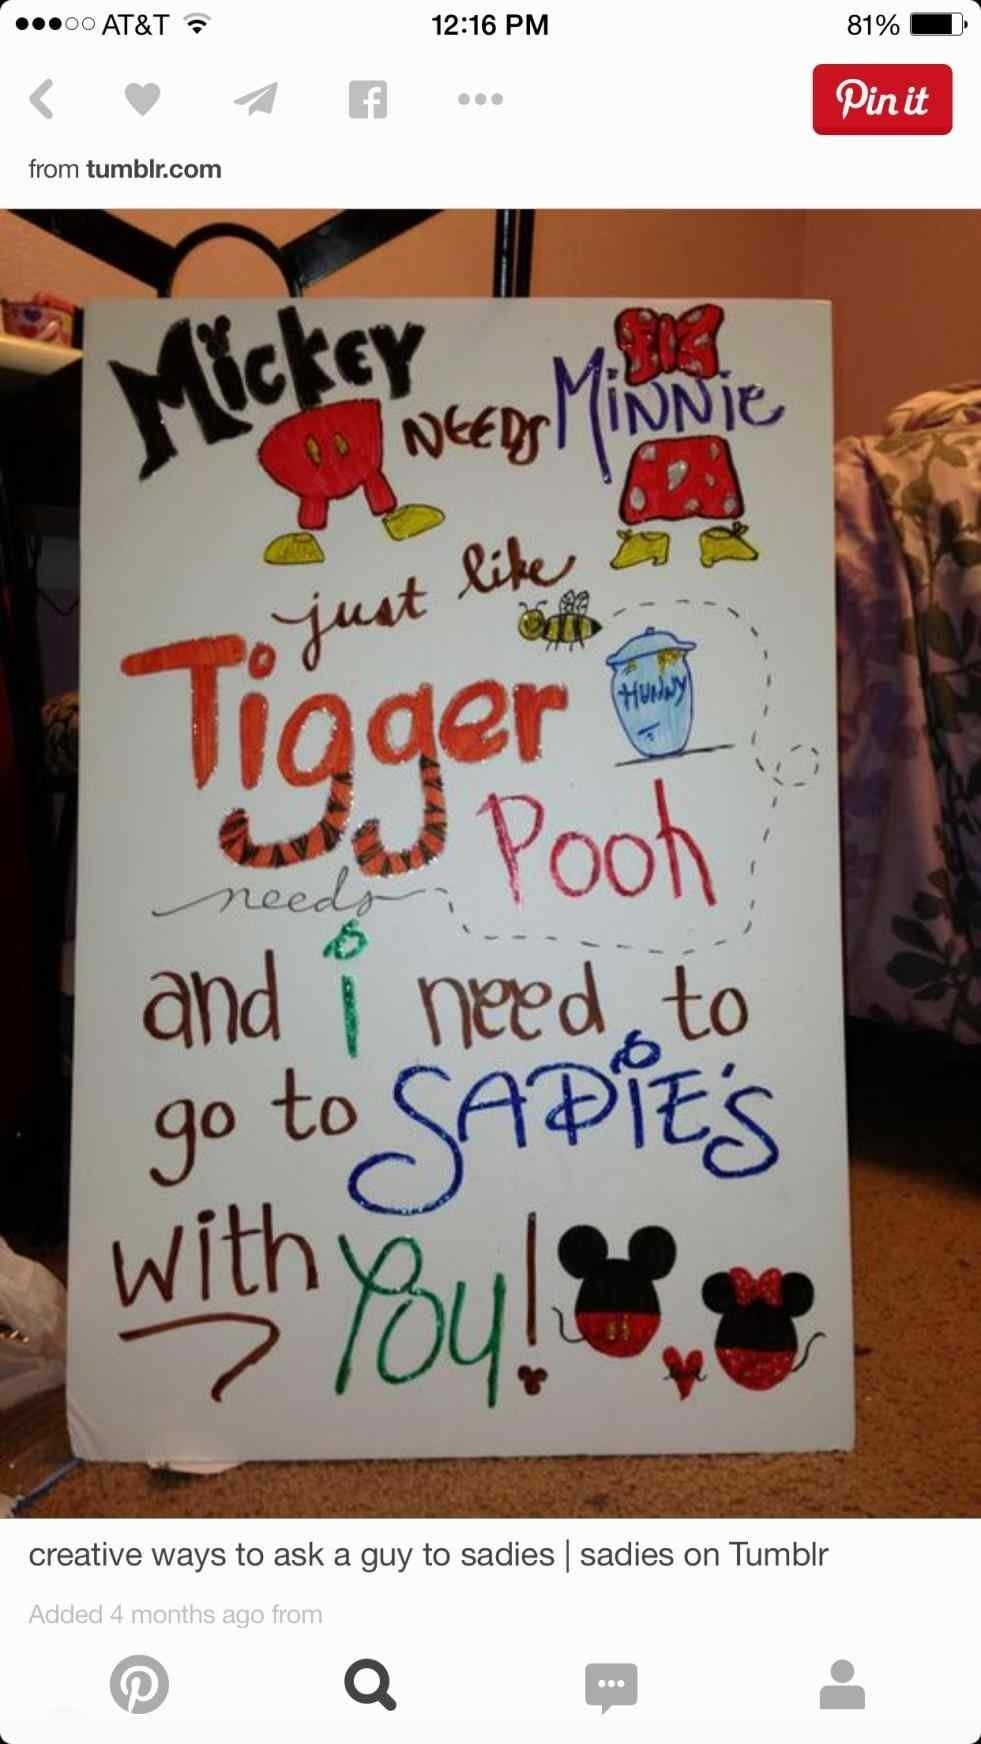 10 Nice Cute Ideas To Ask A Girl To Prom for ways ask a girl homecoming image cute volleyball promposals 2020